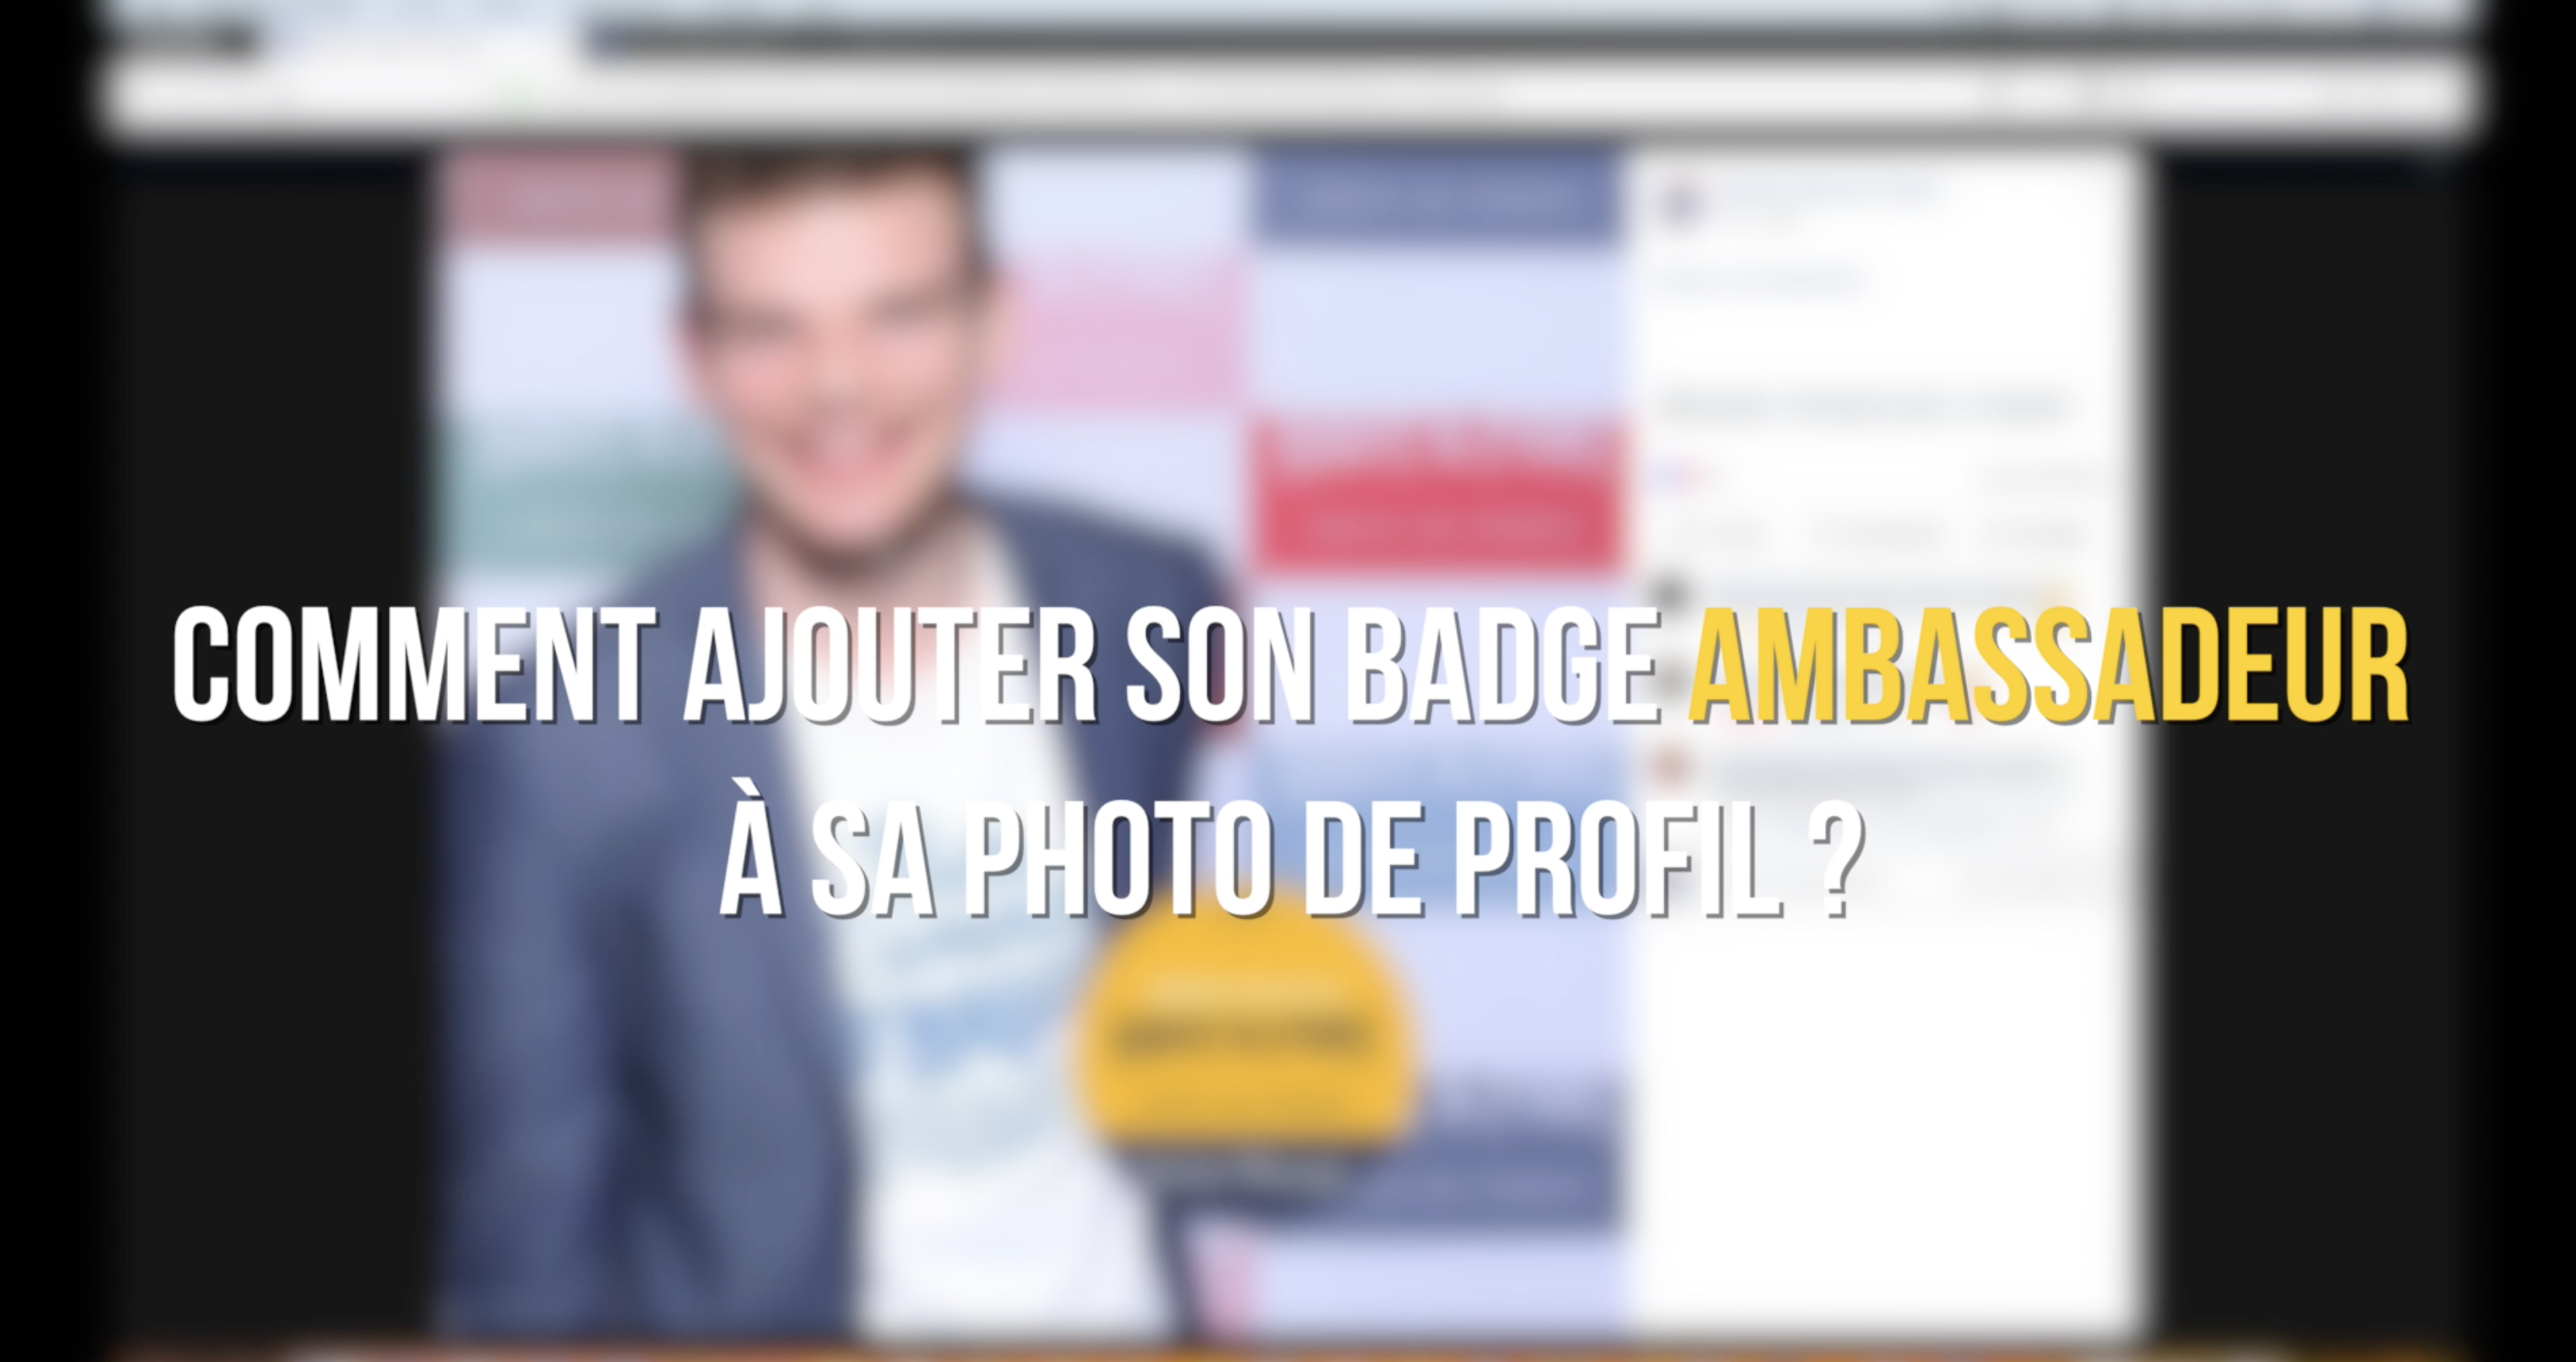 Comment ajouter son badge ambassadeur à sa photo de profil ?